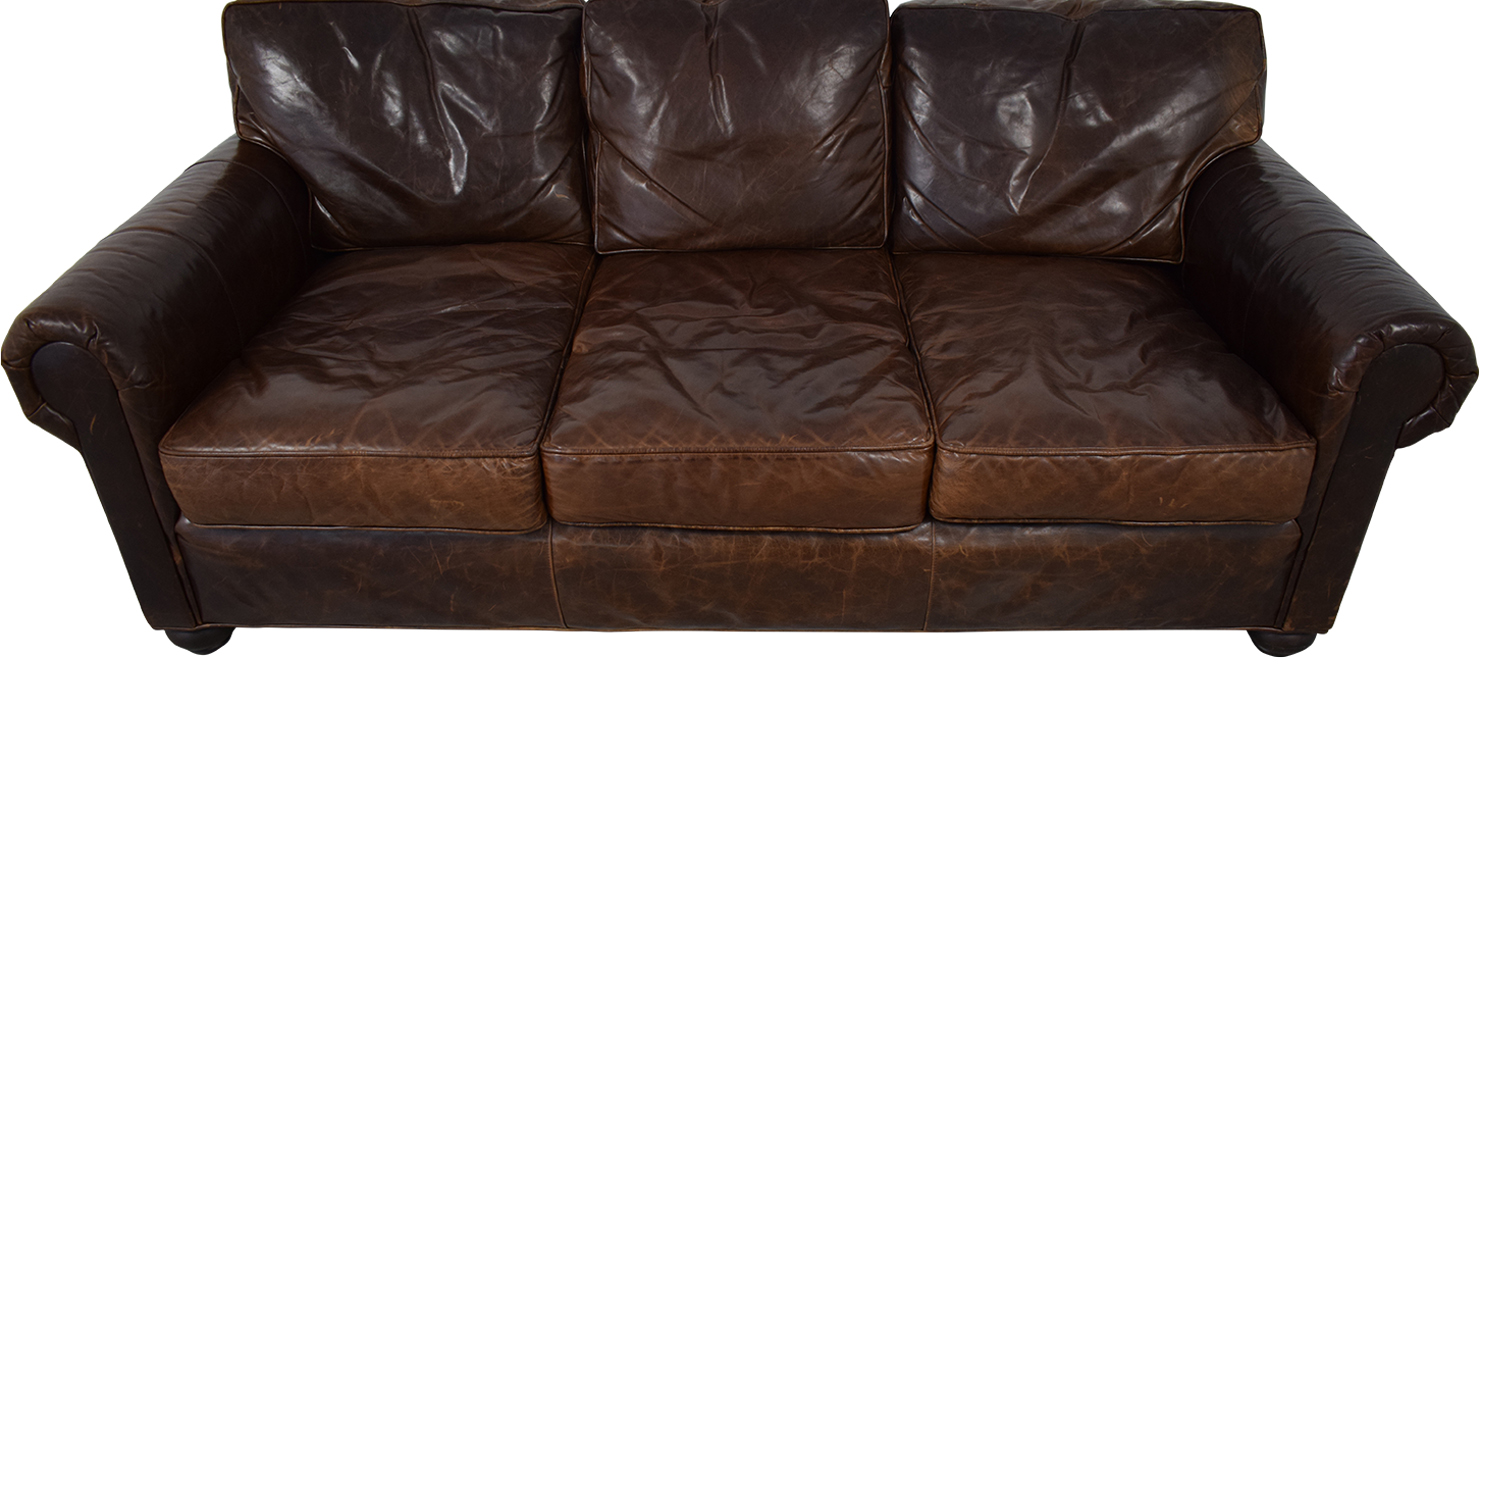 Restoration Hardware Restoration Hardware Lancaster Leather Sofa brown